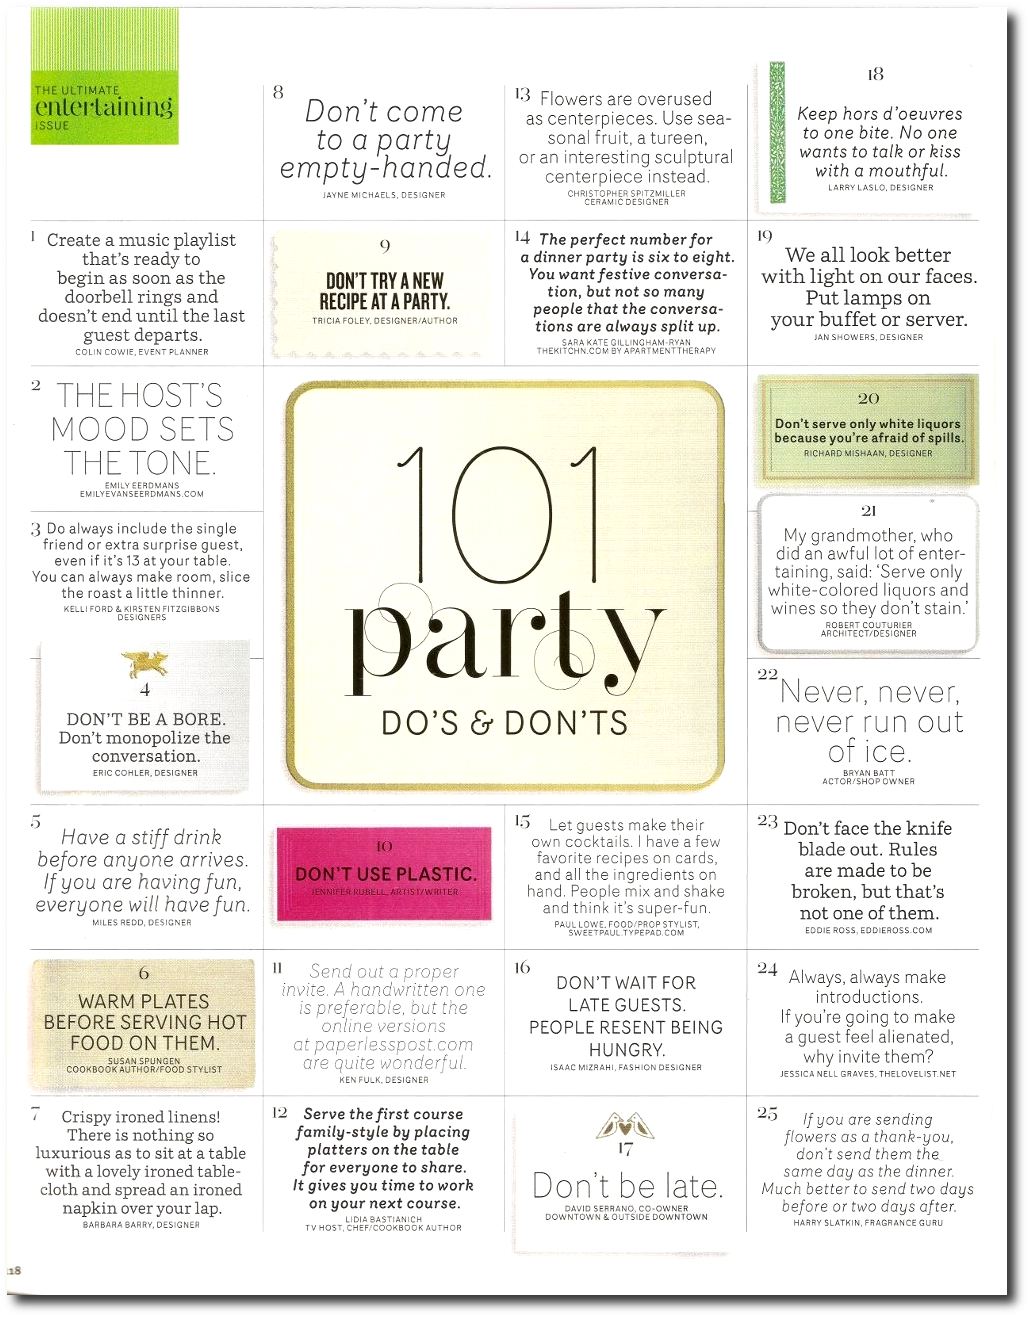 101 Party Dos & Don\'ts | Pinterest | Easy, Scentsy and Party planning